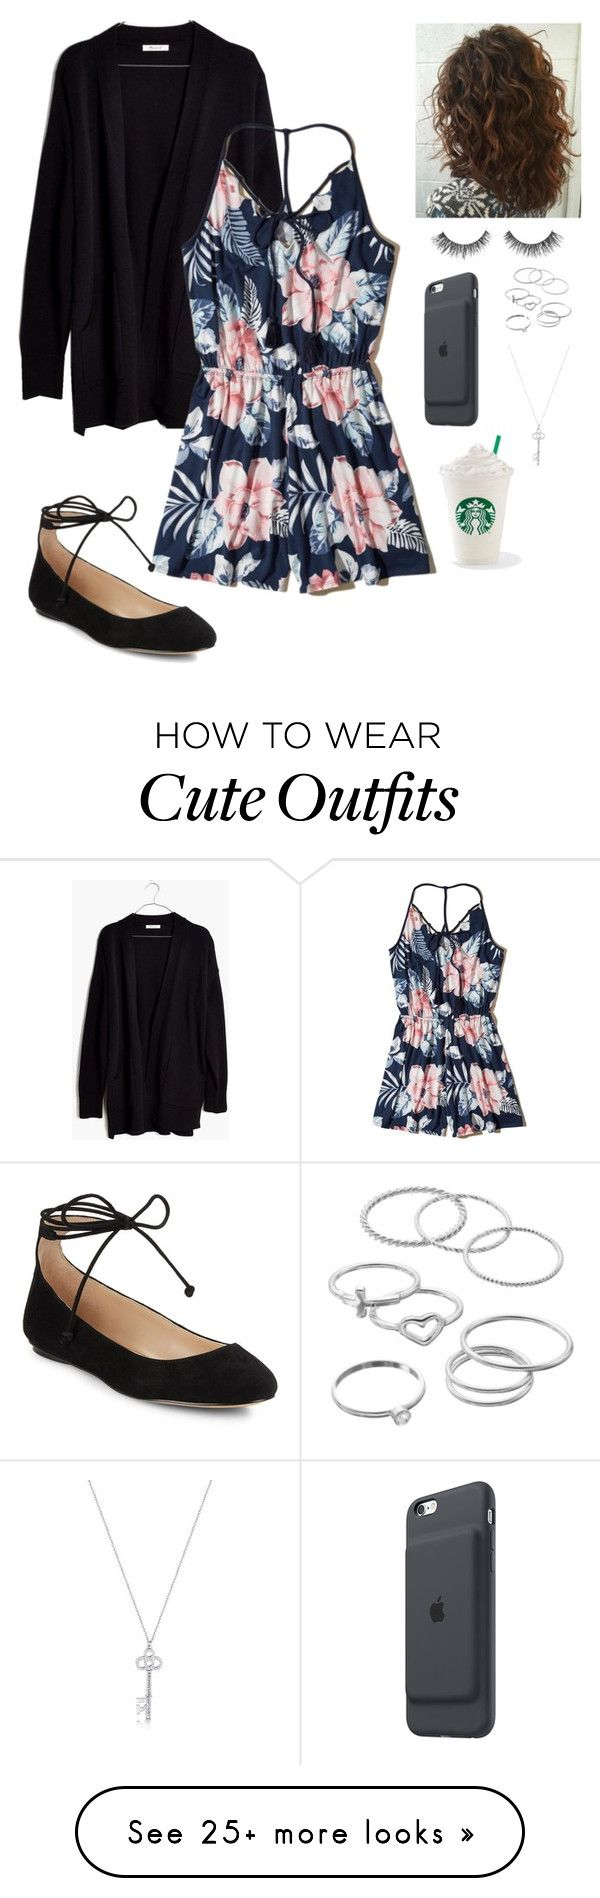 """""""Cute outfit"""" by ariespinosa333 on Polyvore featuring Madewell, Hollister Co., LC Lauren Conrad, Karl Lagerfeld and Apple"""